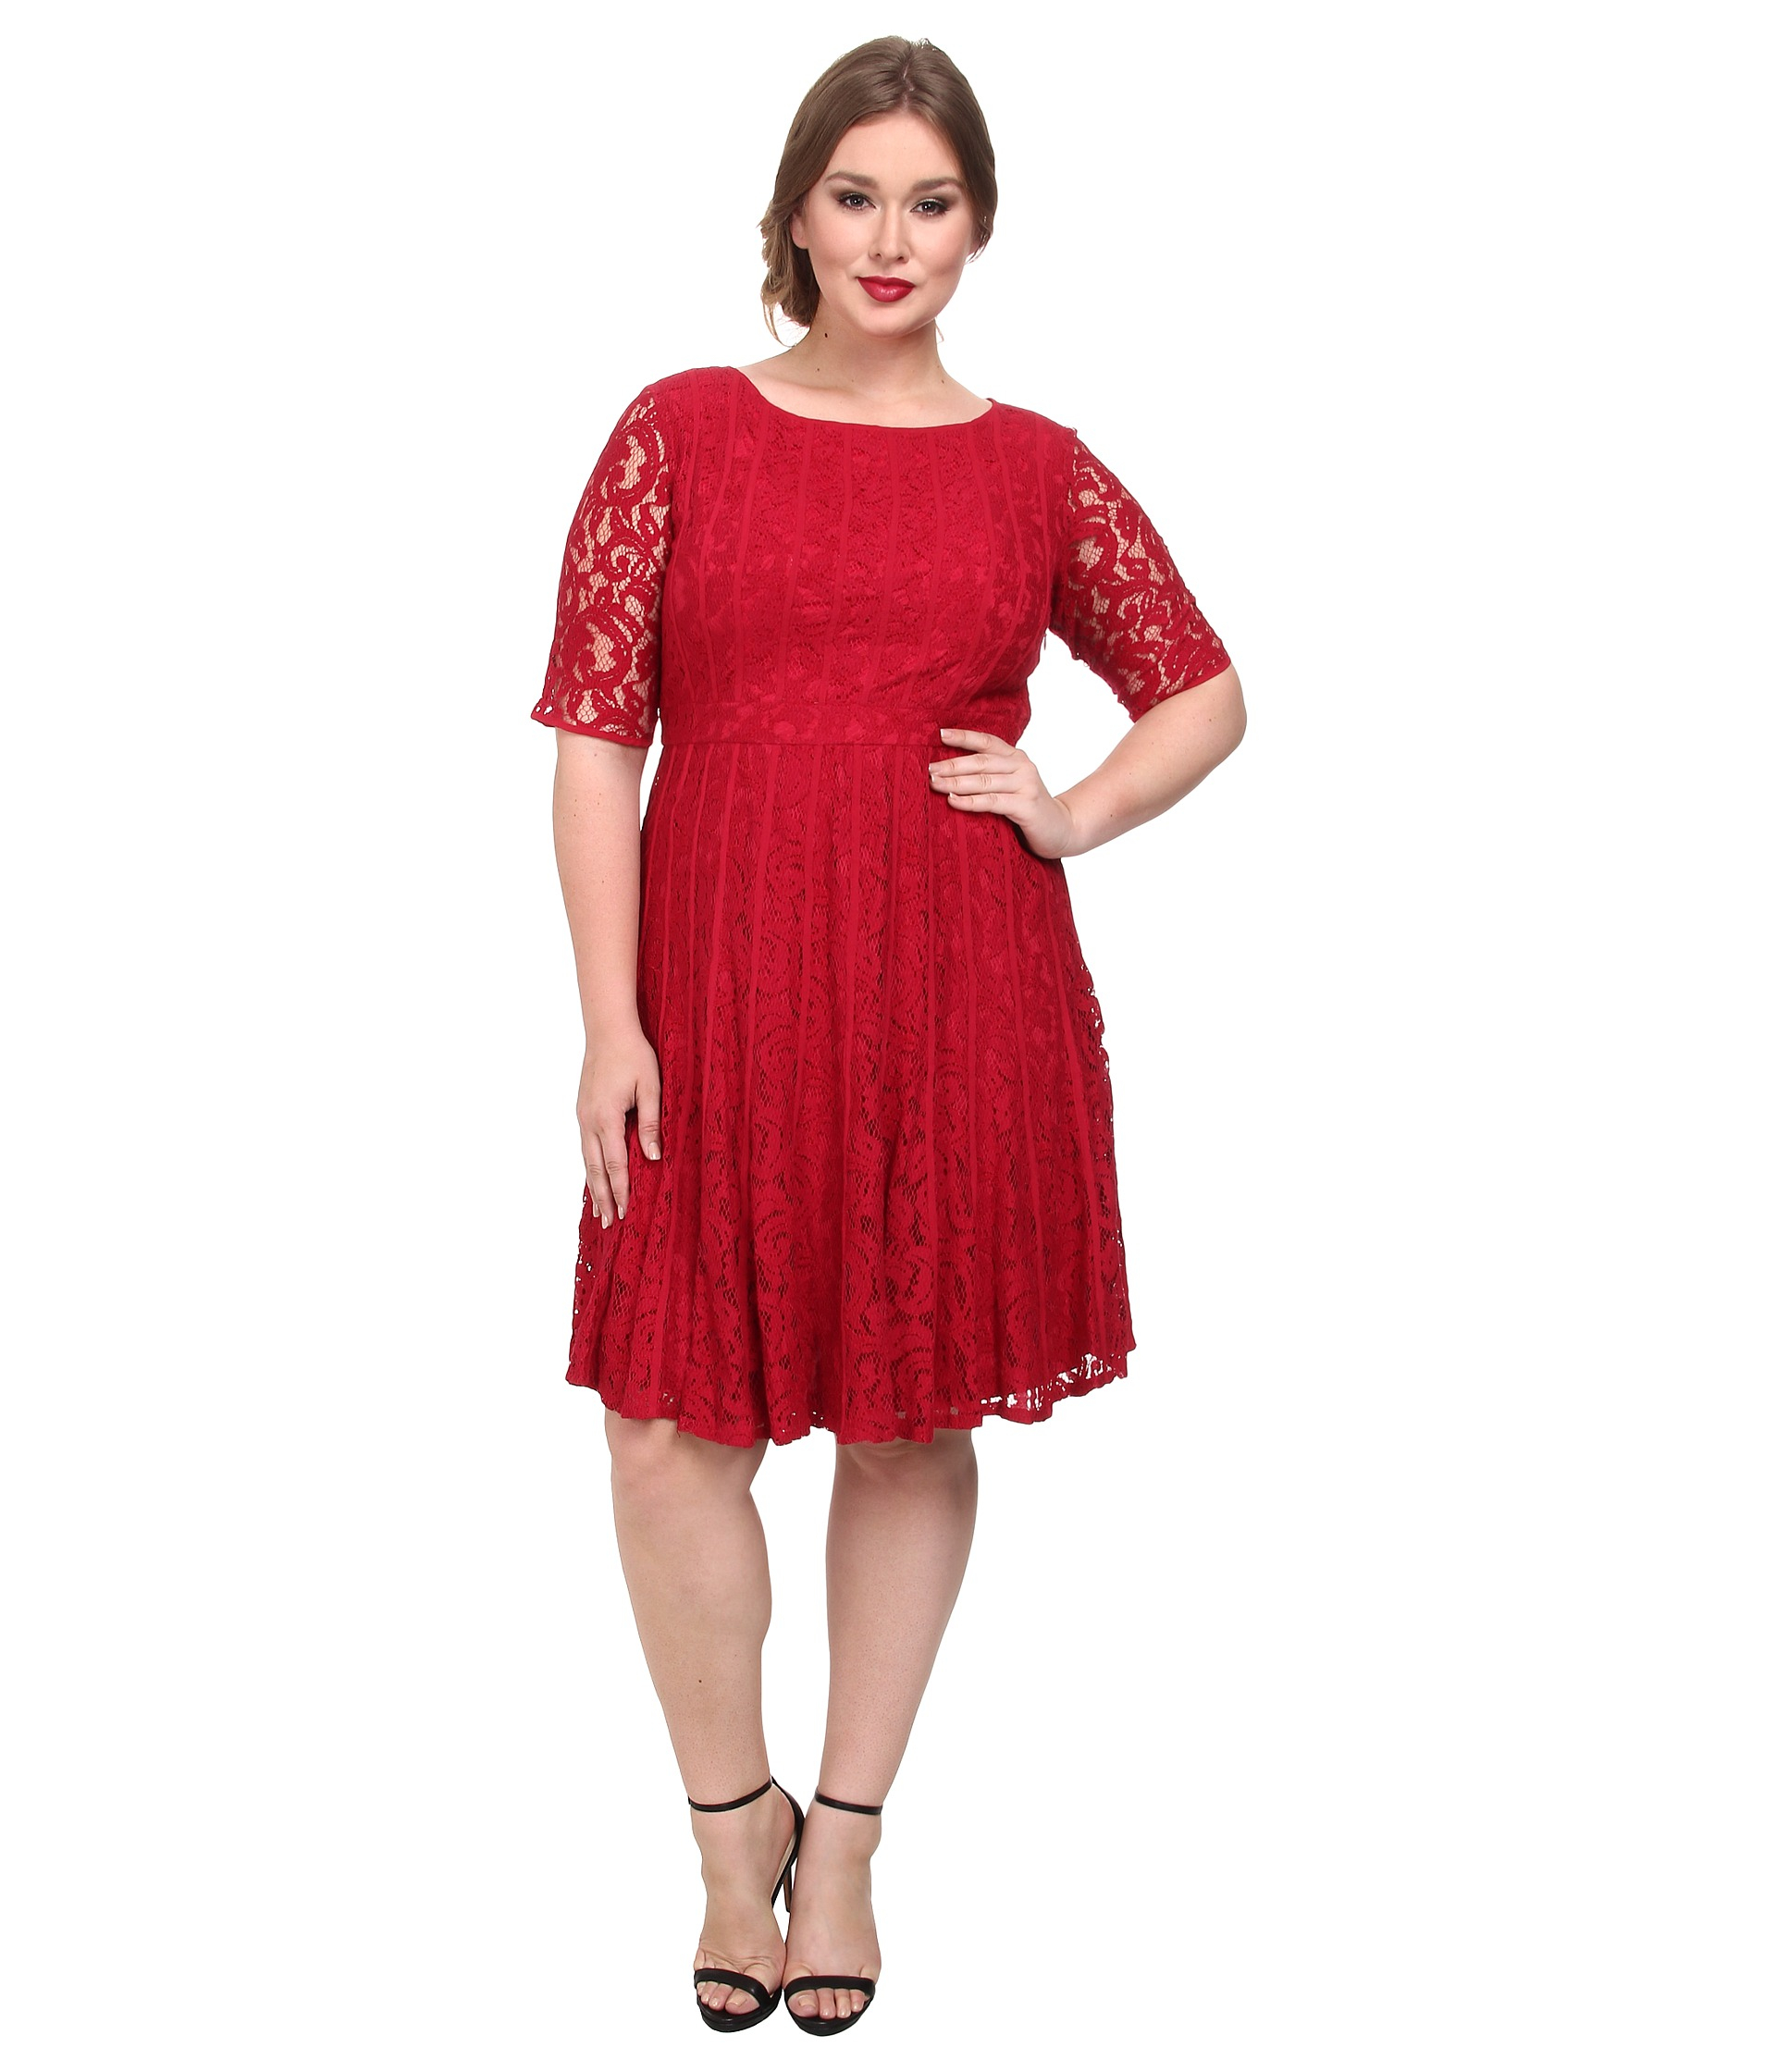 43f5b3e8e25 Lyst - Adrianna Papell Plus Size Lace Fractured Fit   Flare Dress in Red